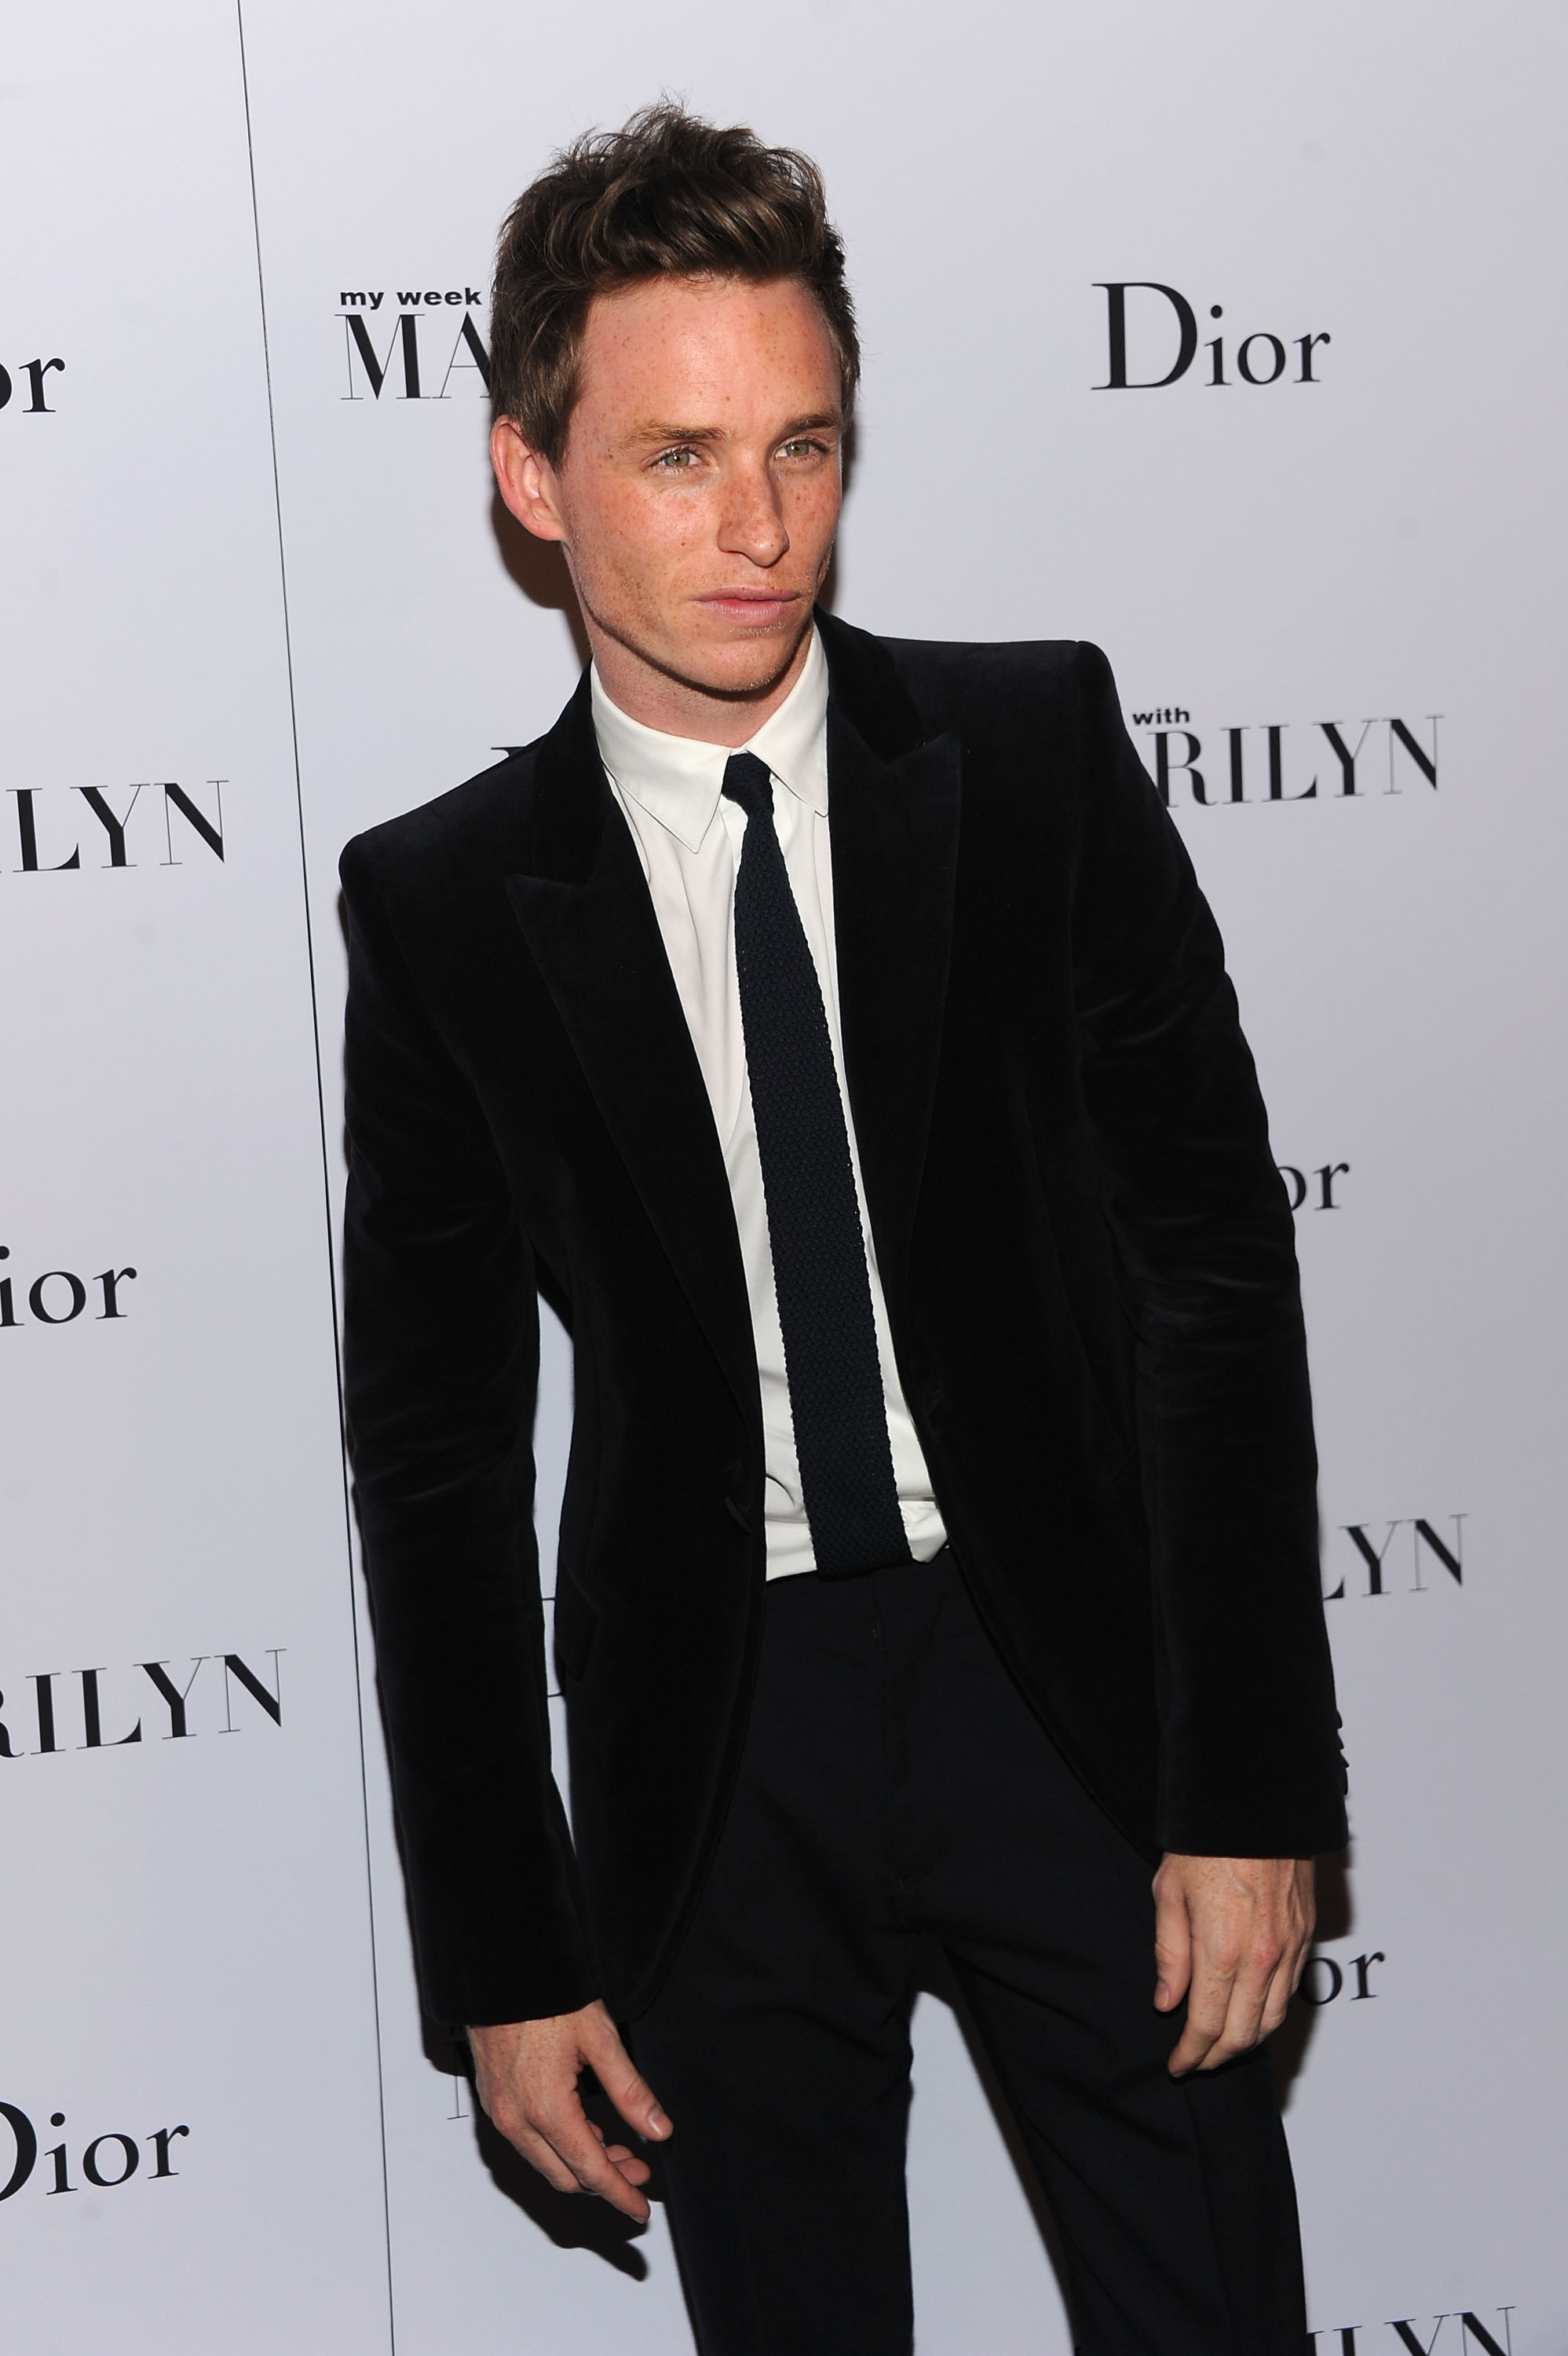 Eddie Redmayne made the rounds at Dior's after party for My Week With Marilyn.